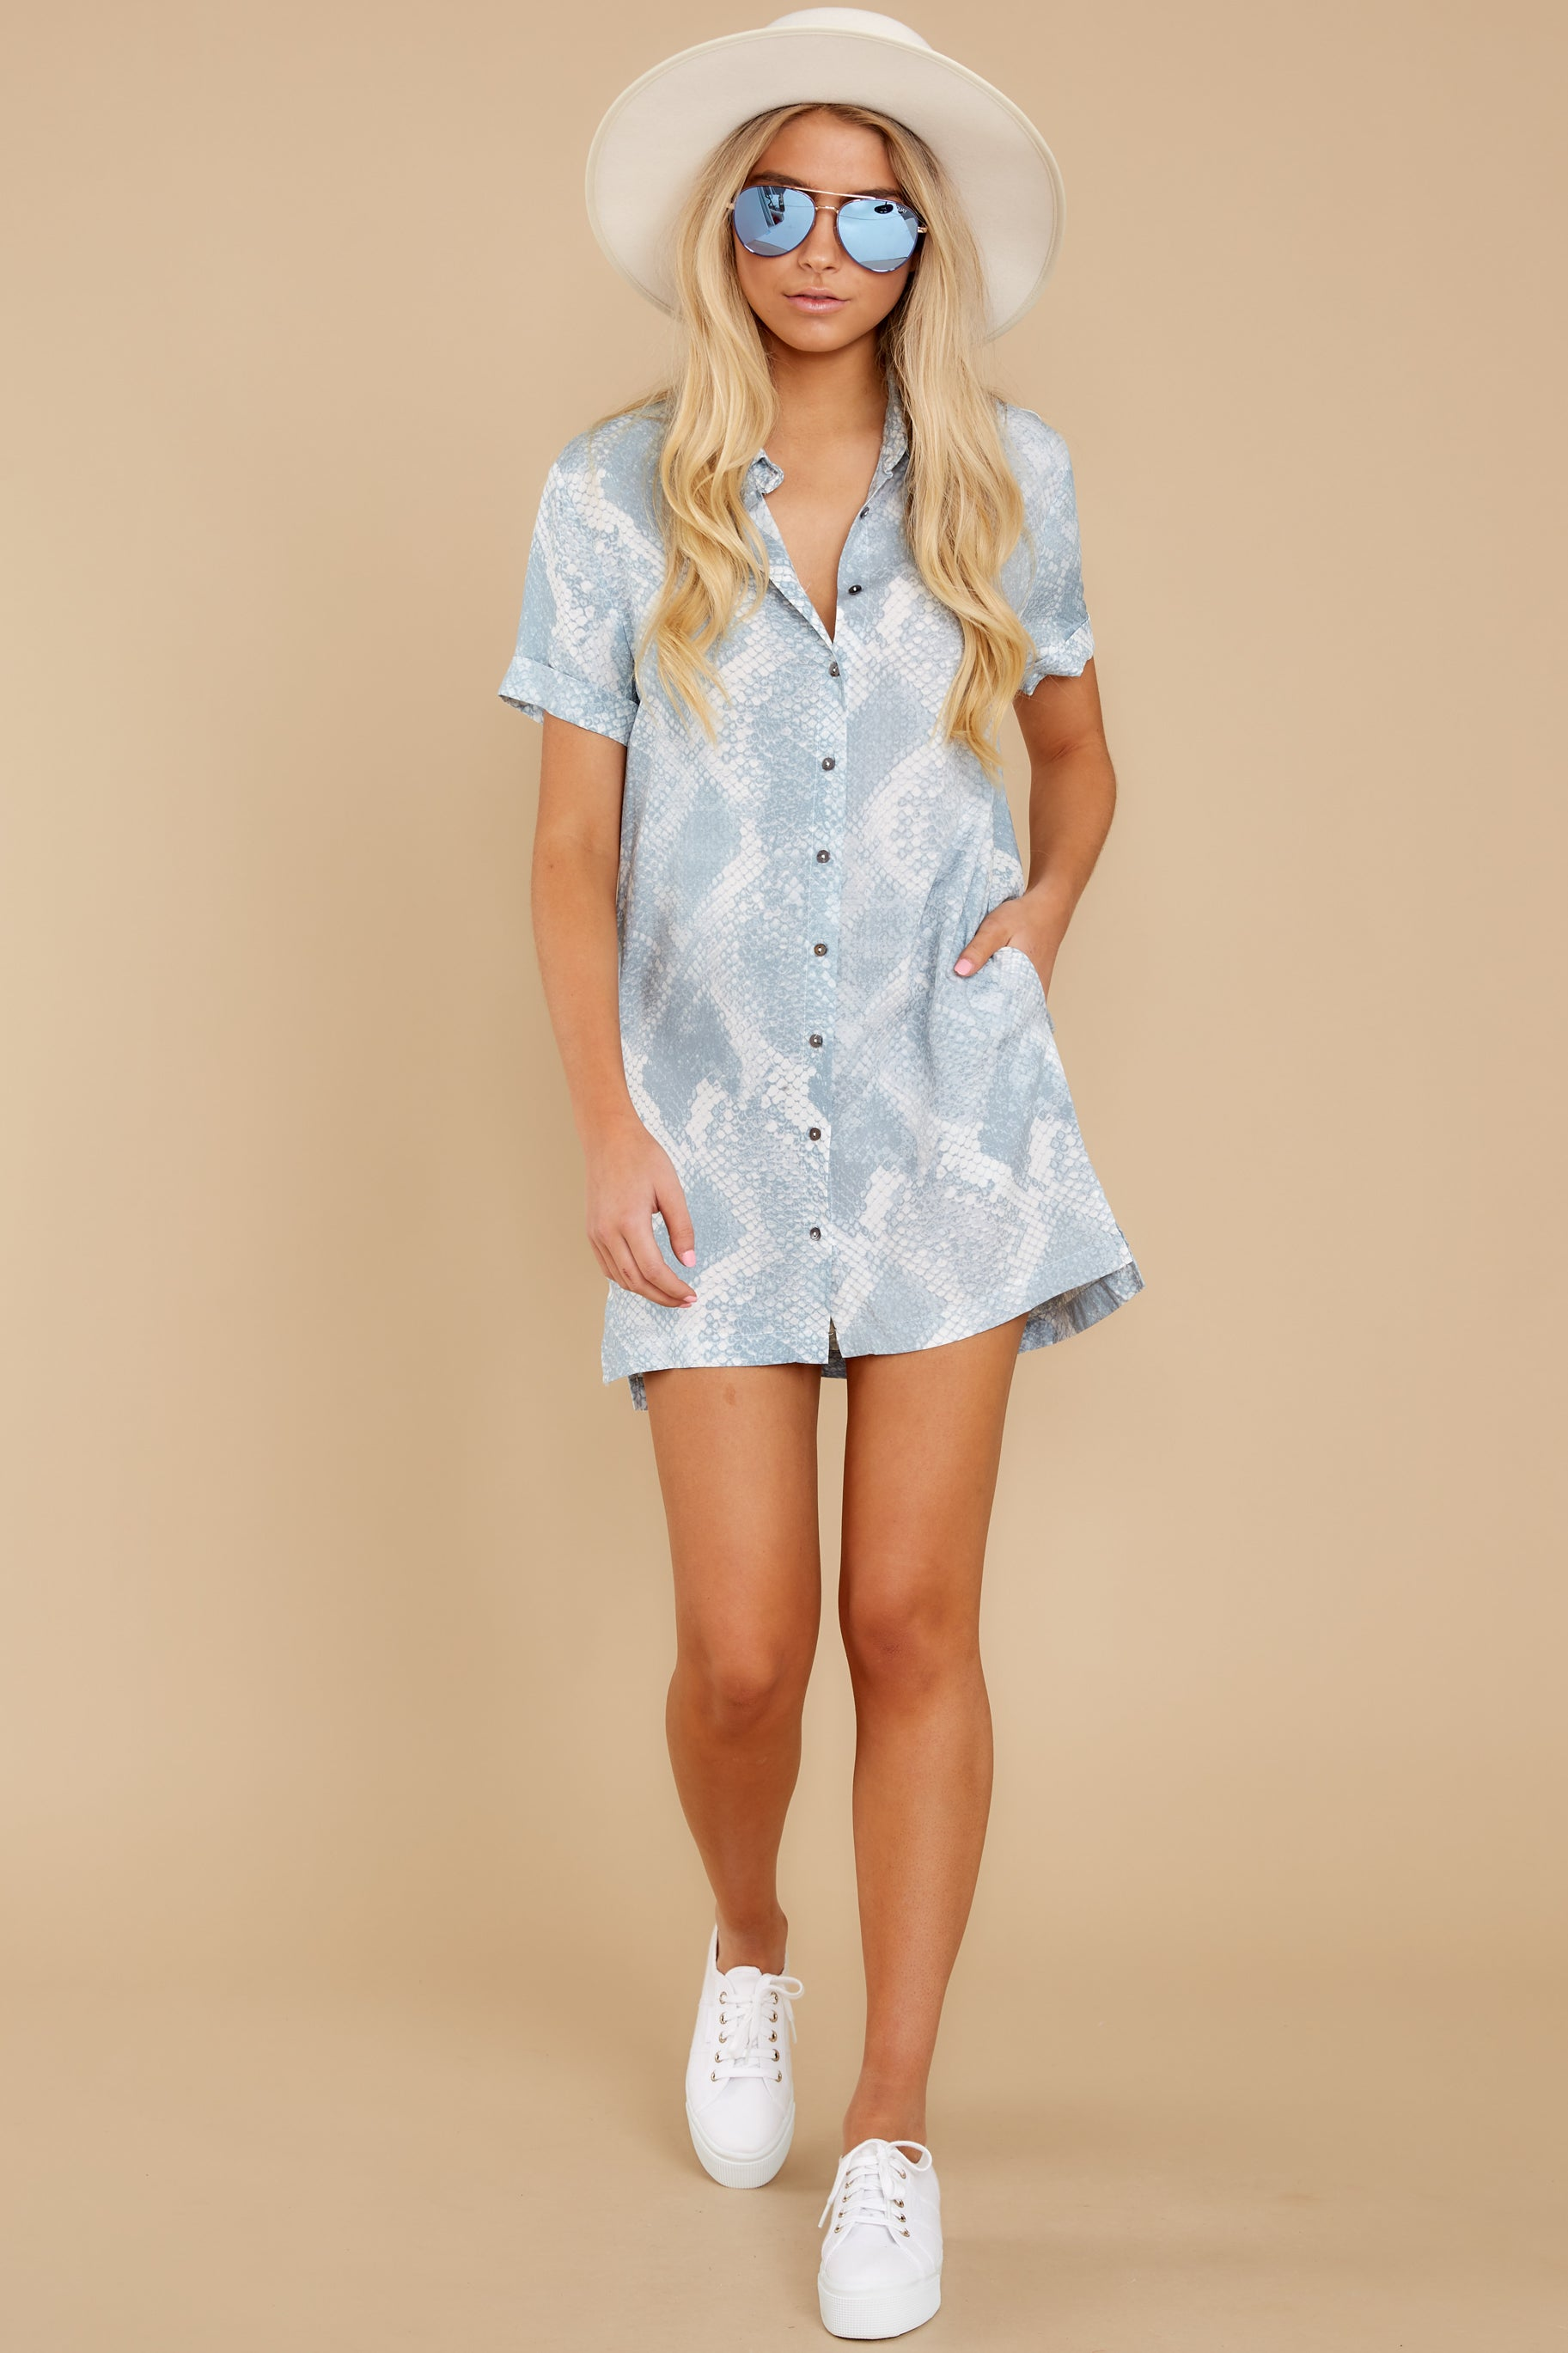 4 Meeting Family Light Blue Snake Print Button Up Tunic at reddress.com